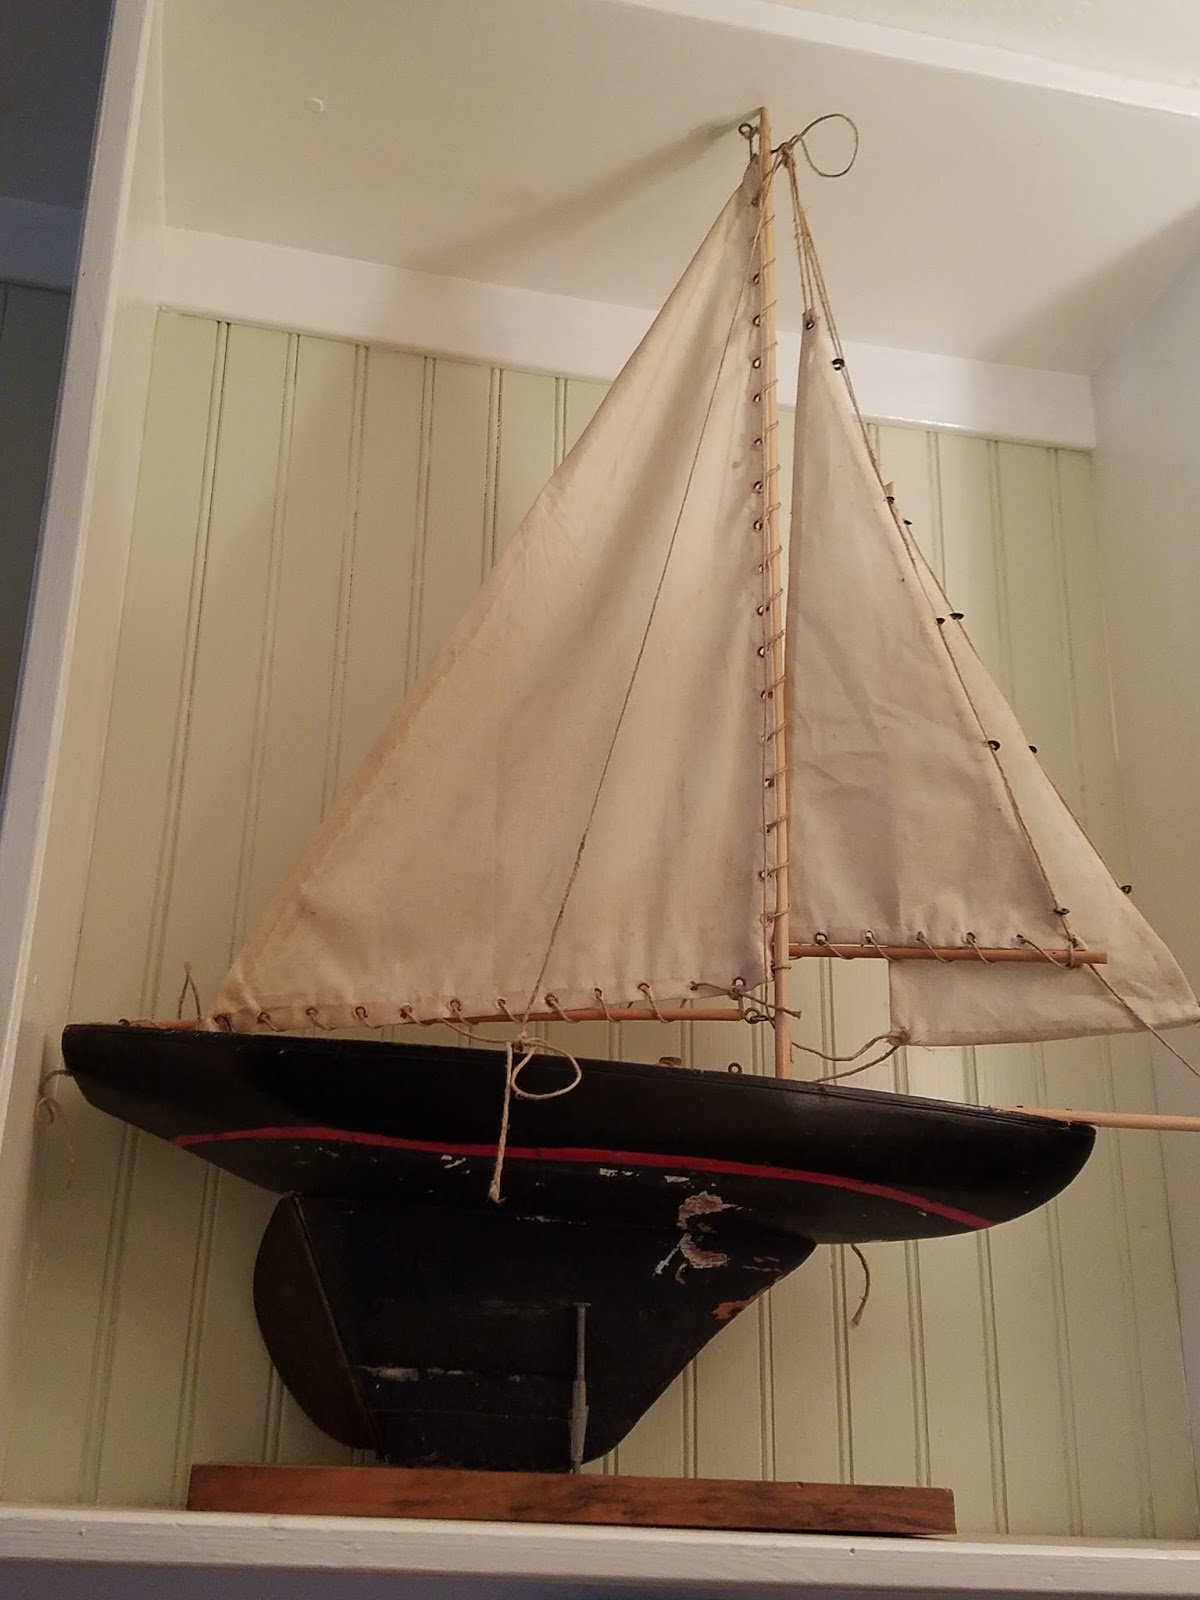 Windmill Farm: Collections of Antique Pond Model Yacht